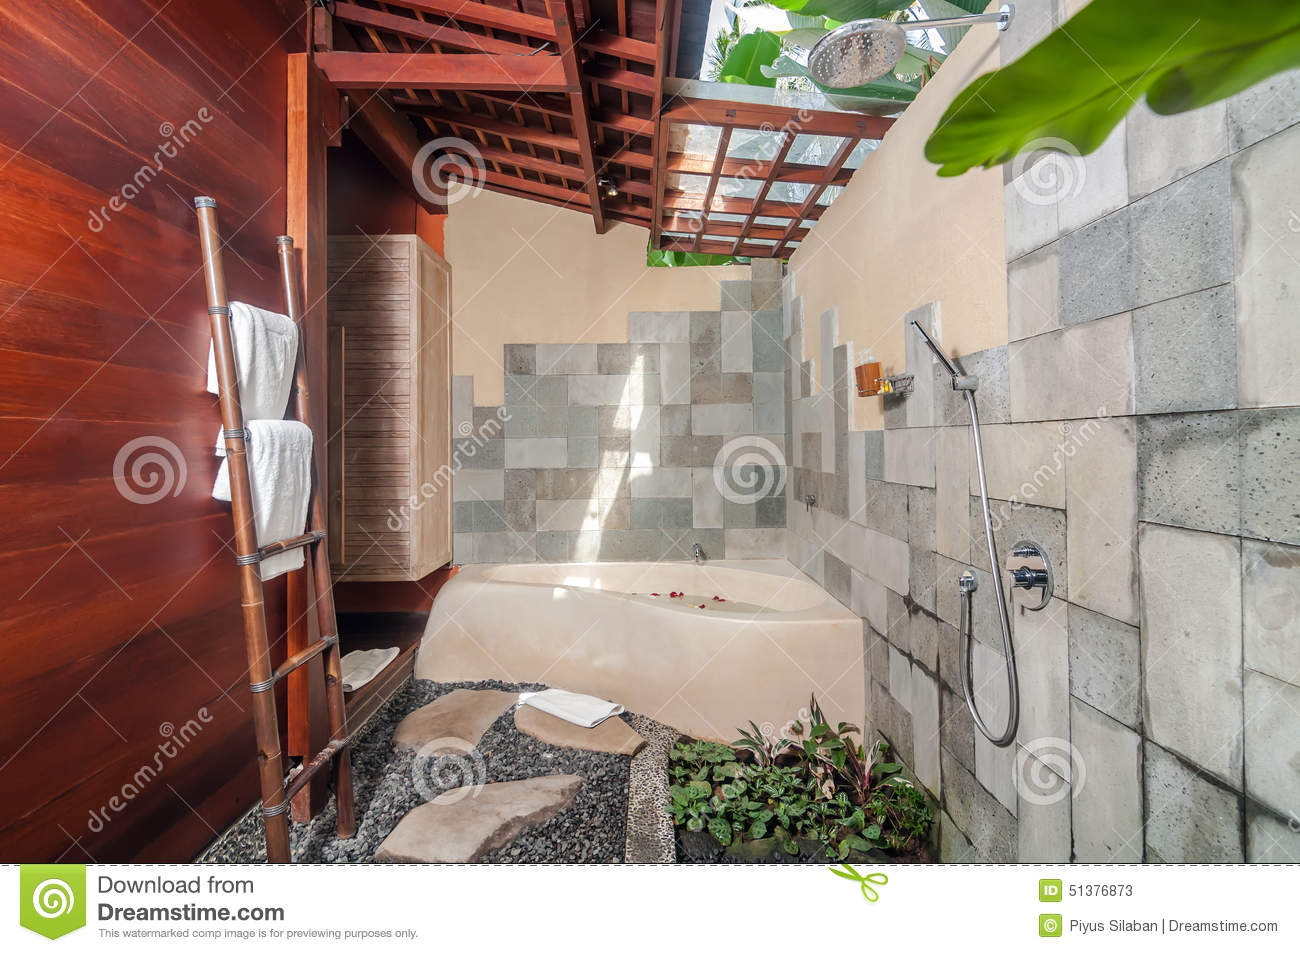 Imagen De Baño Limpio:Luxury Indoor Outdoor Bathroom